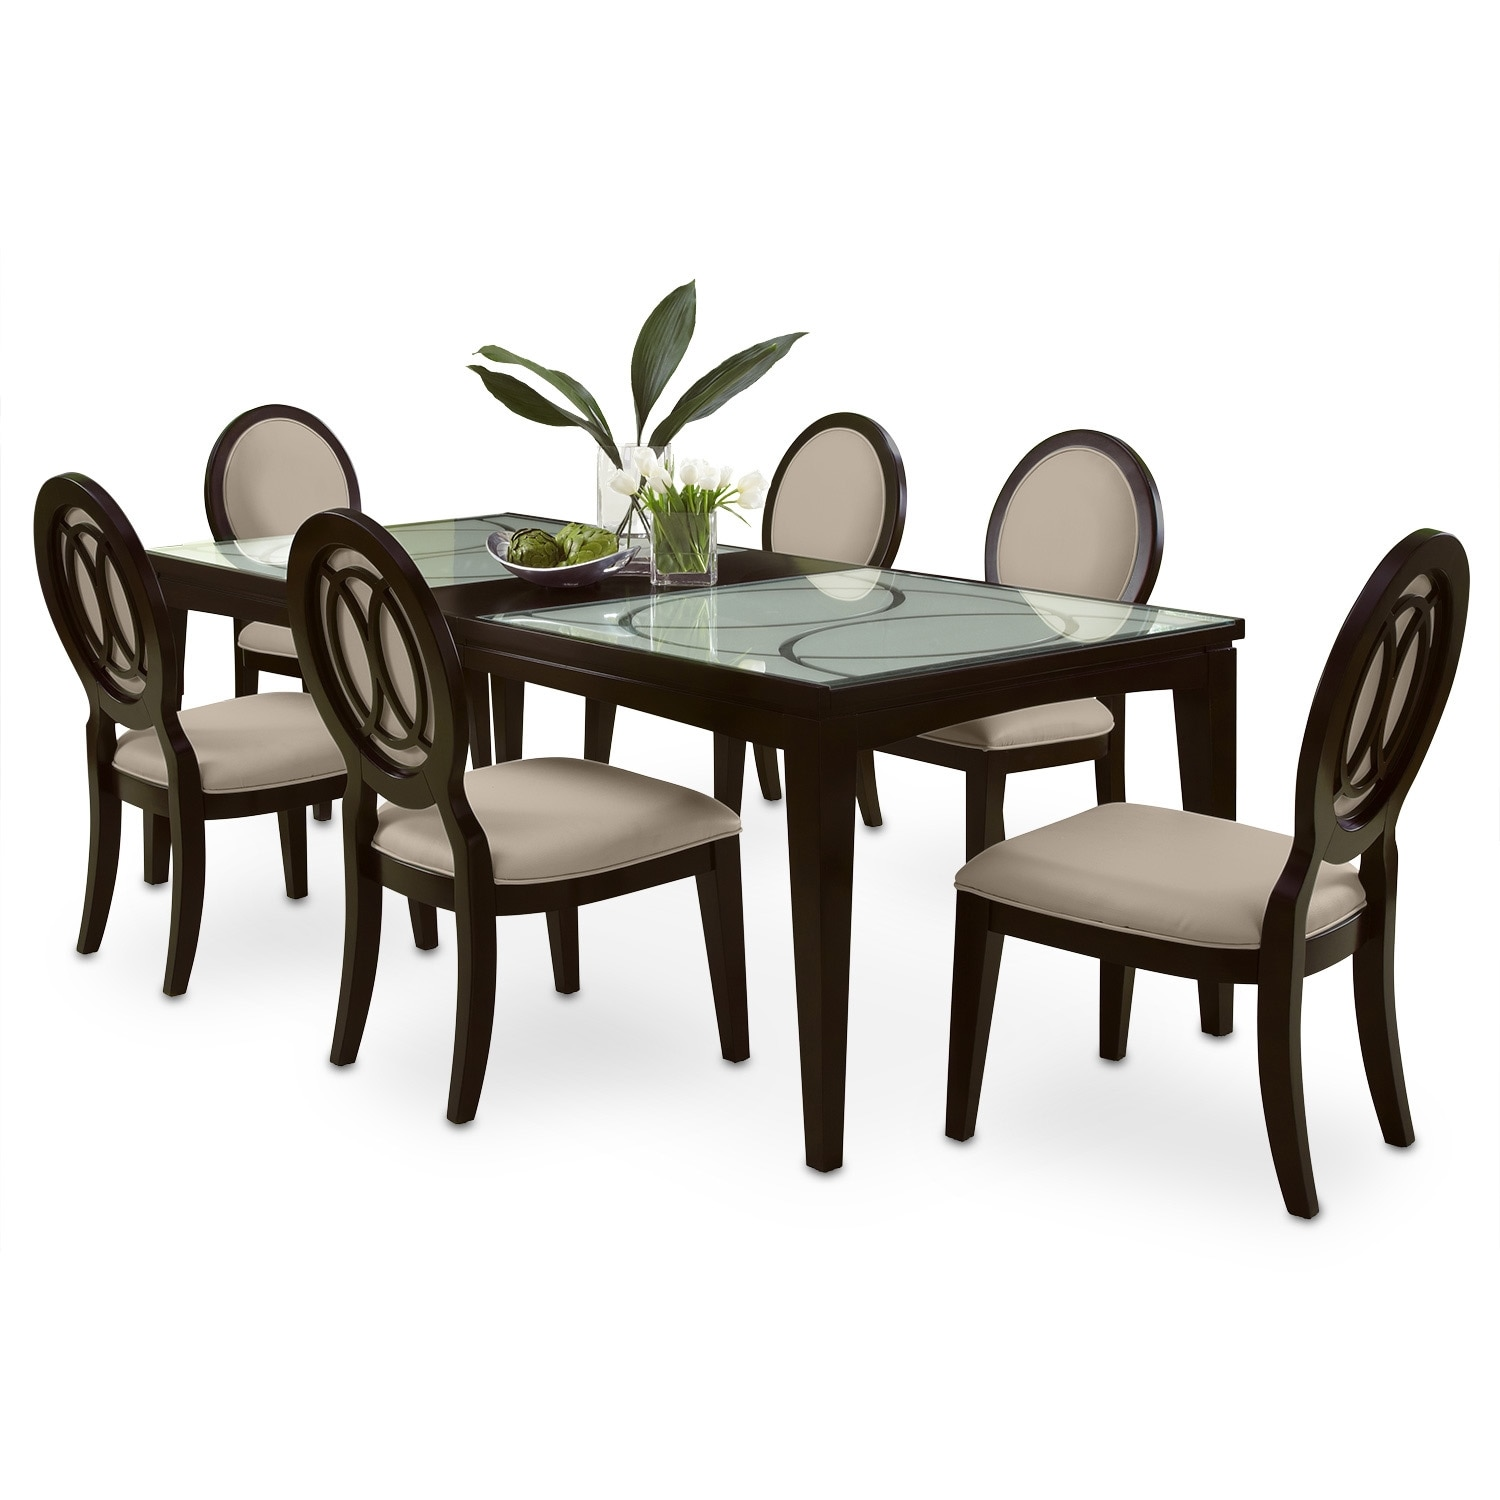 Cosmo table and 6 chairs merlot american signature for Dining room table with 6 chairs